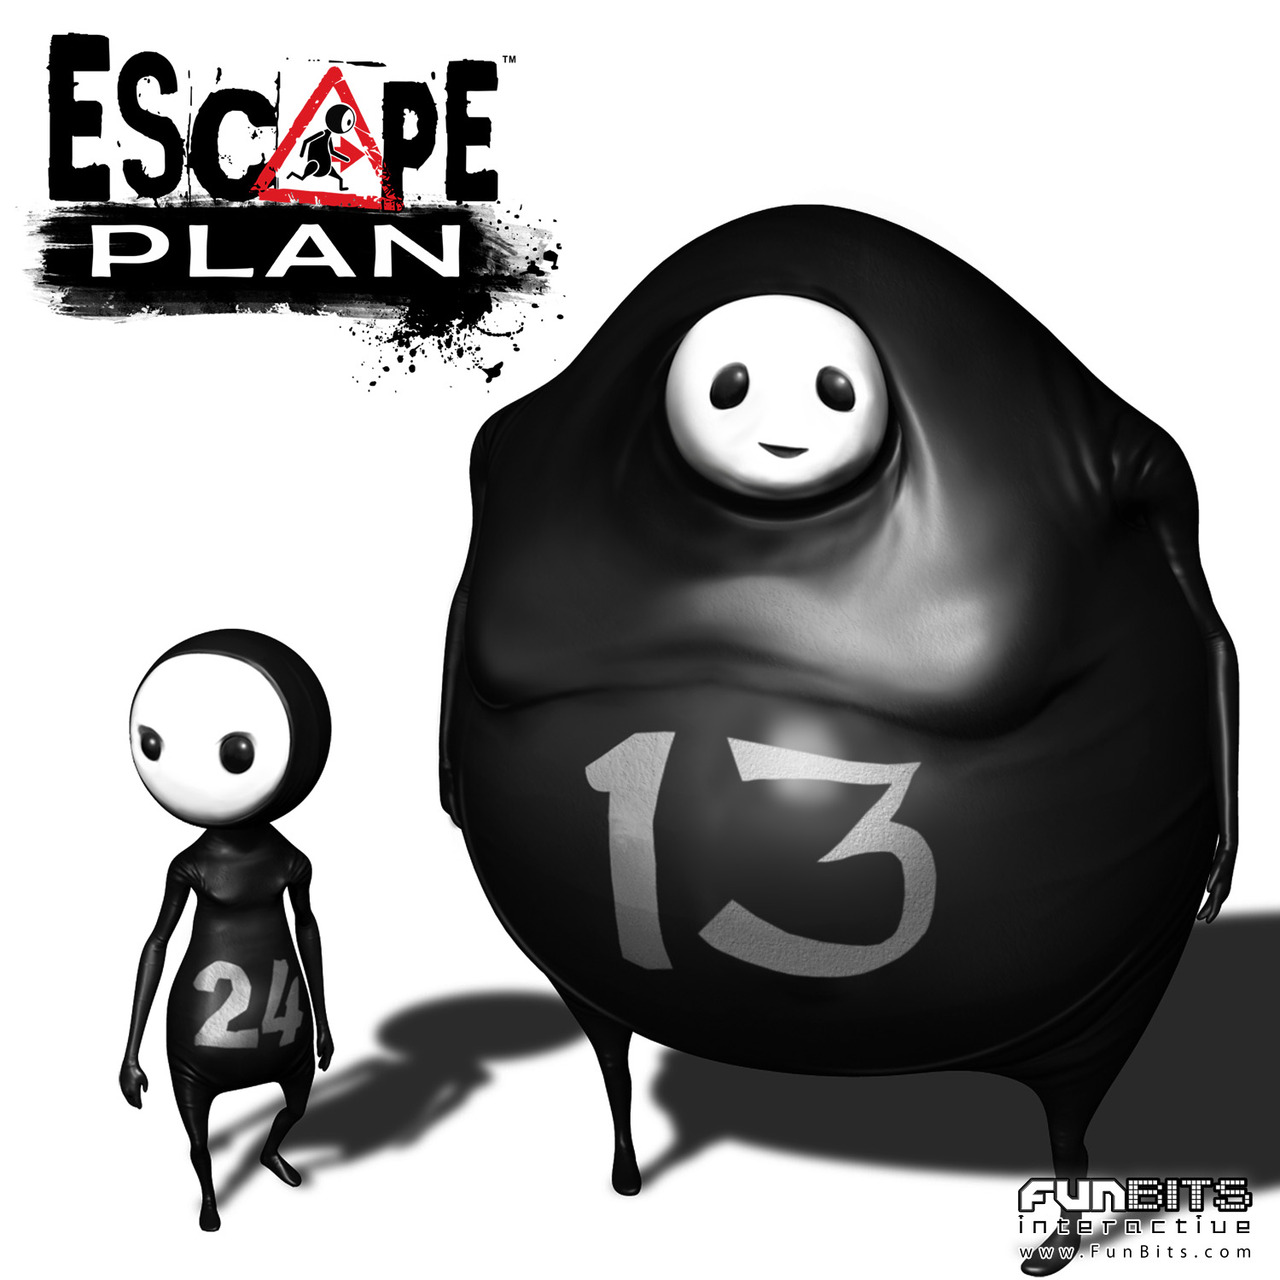 escape-plan-playstation-vita-1313521009-001.jpg